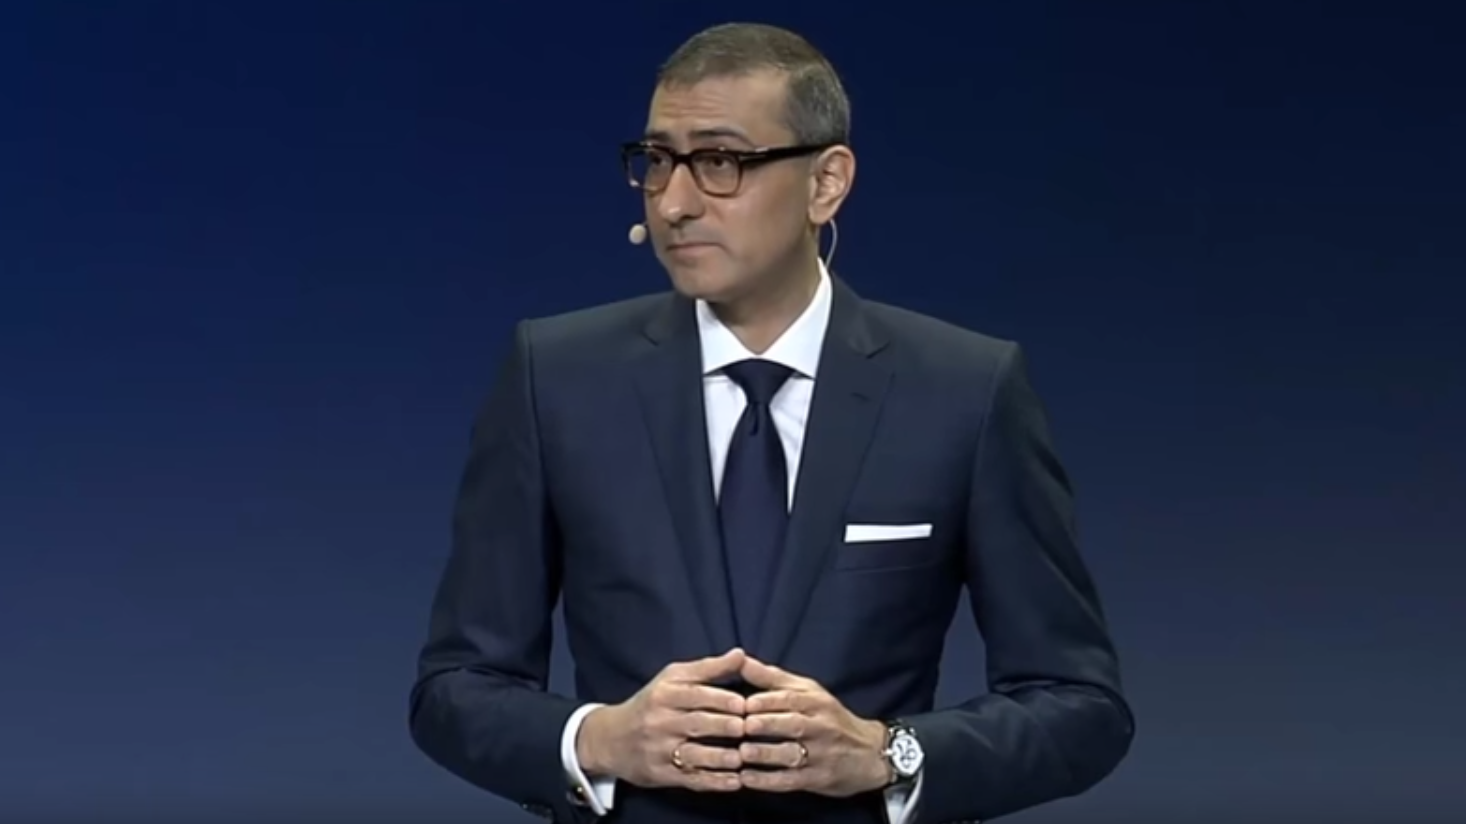 Nokia CEO: 5G is Moving Very Fast and is Going to Have Massive Benefits